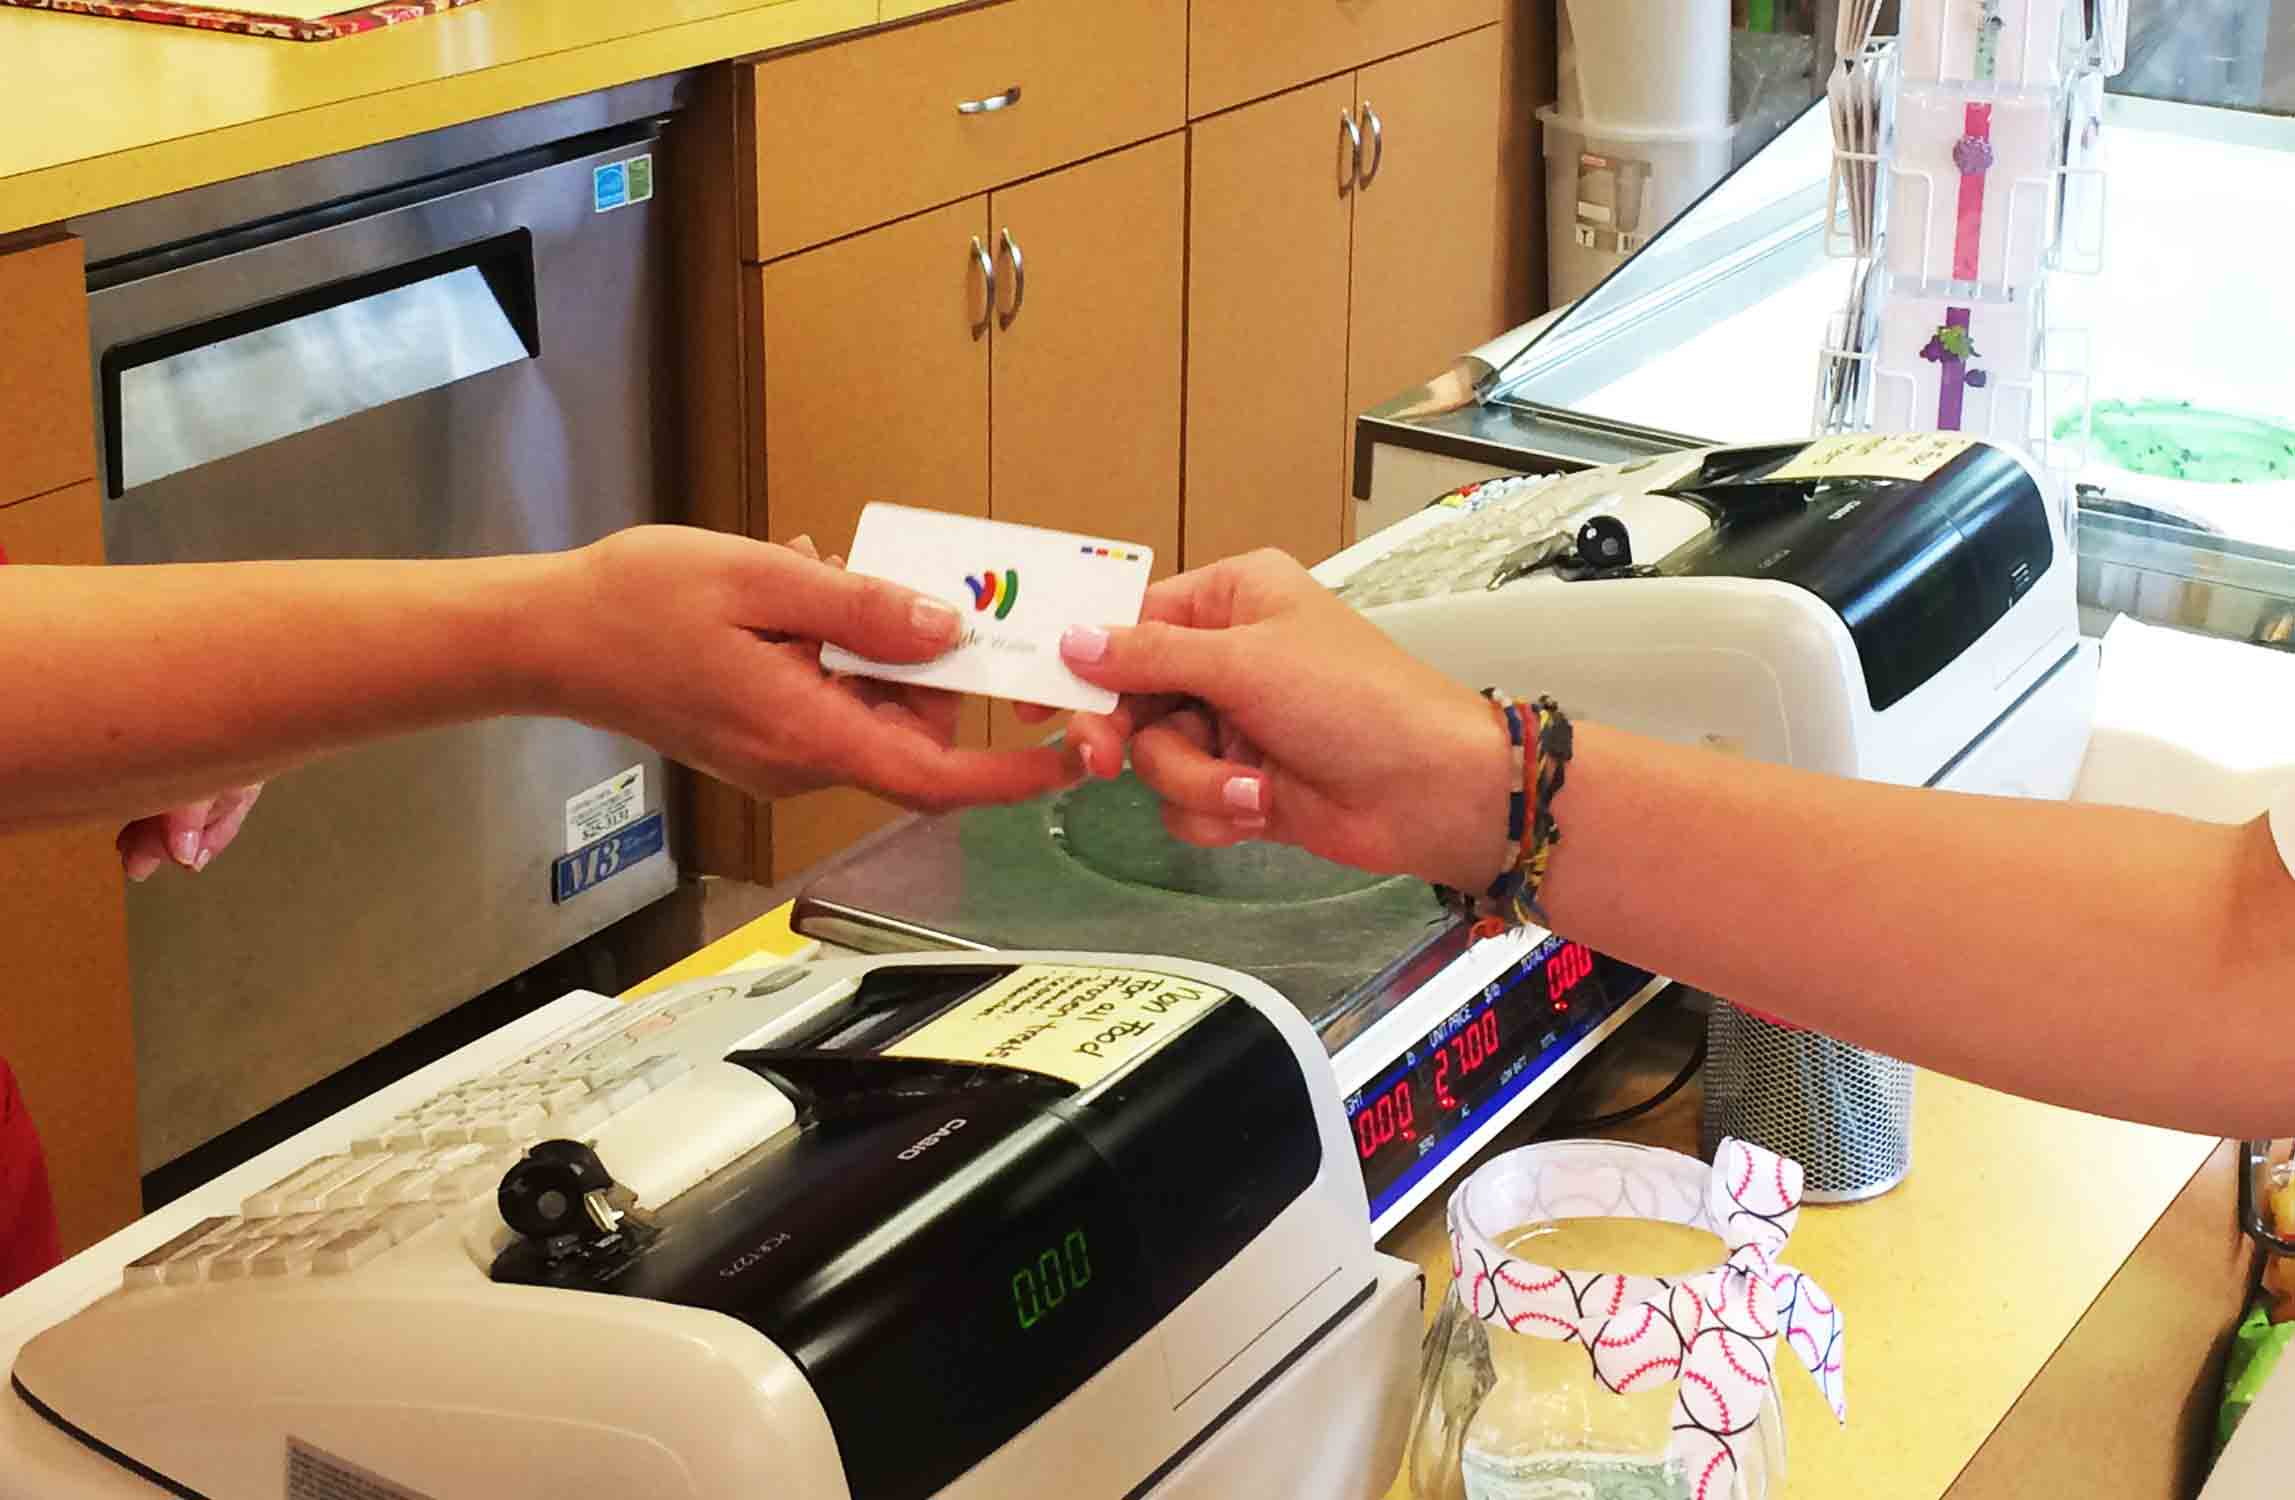 Handing Google Wallet card to cashier